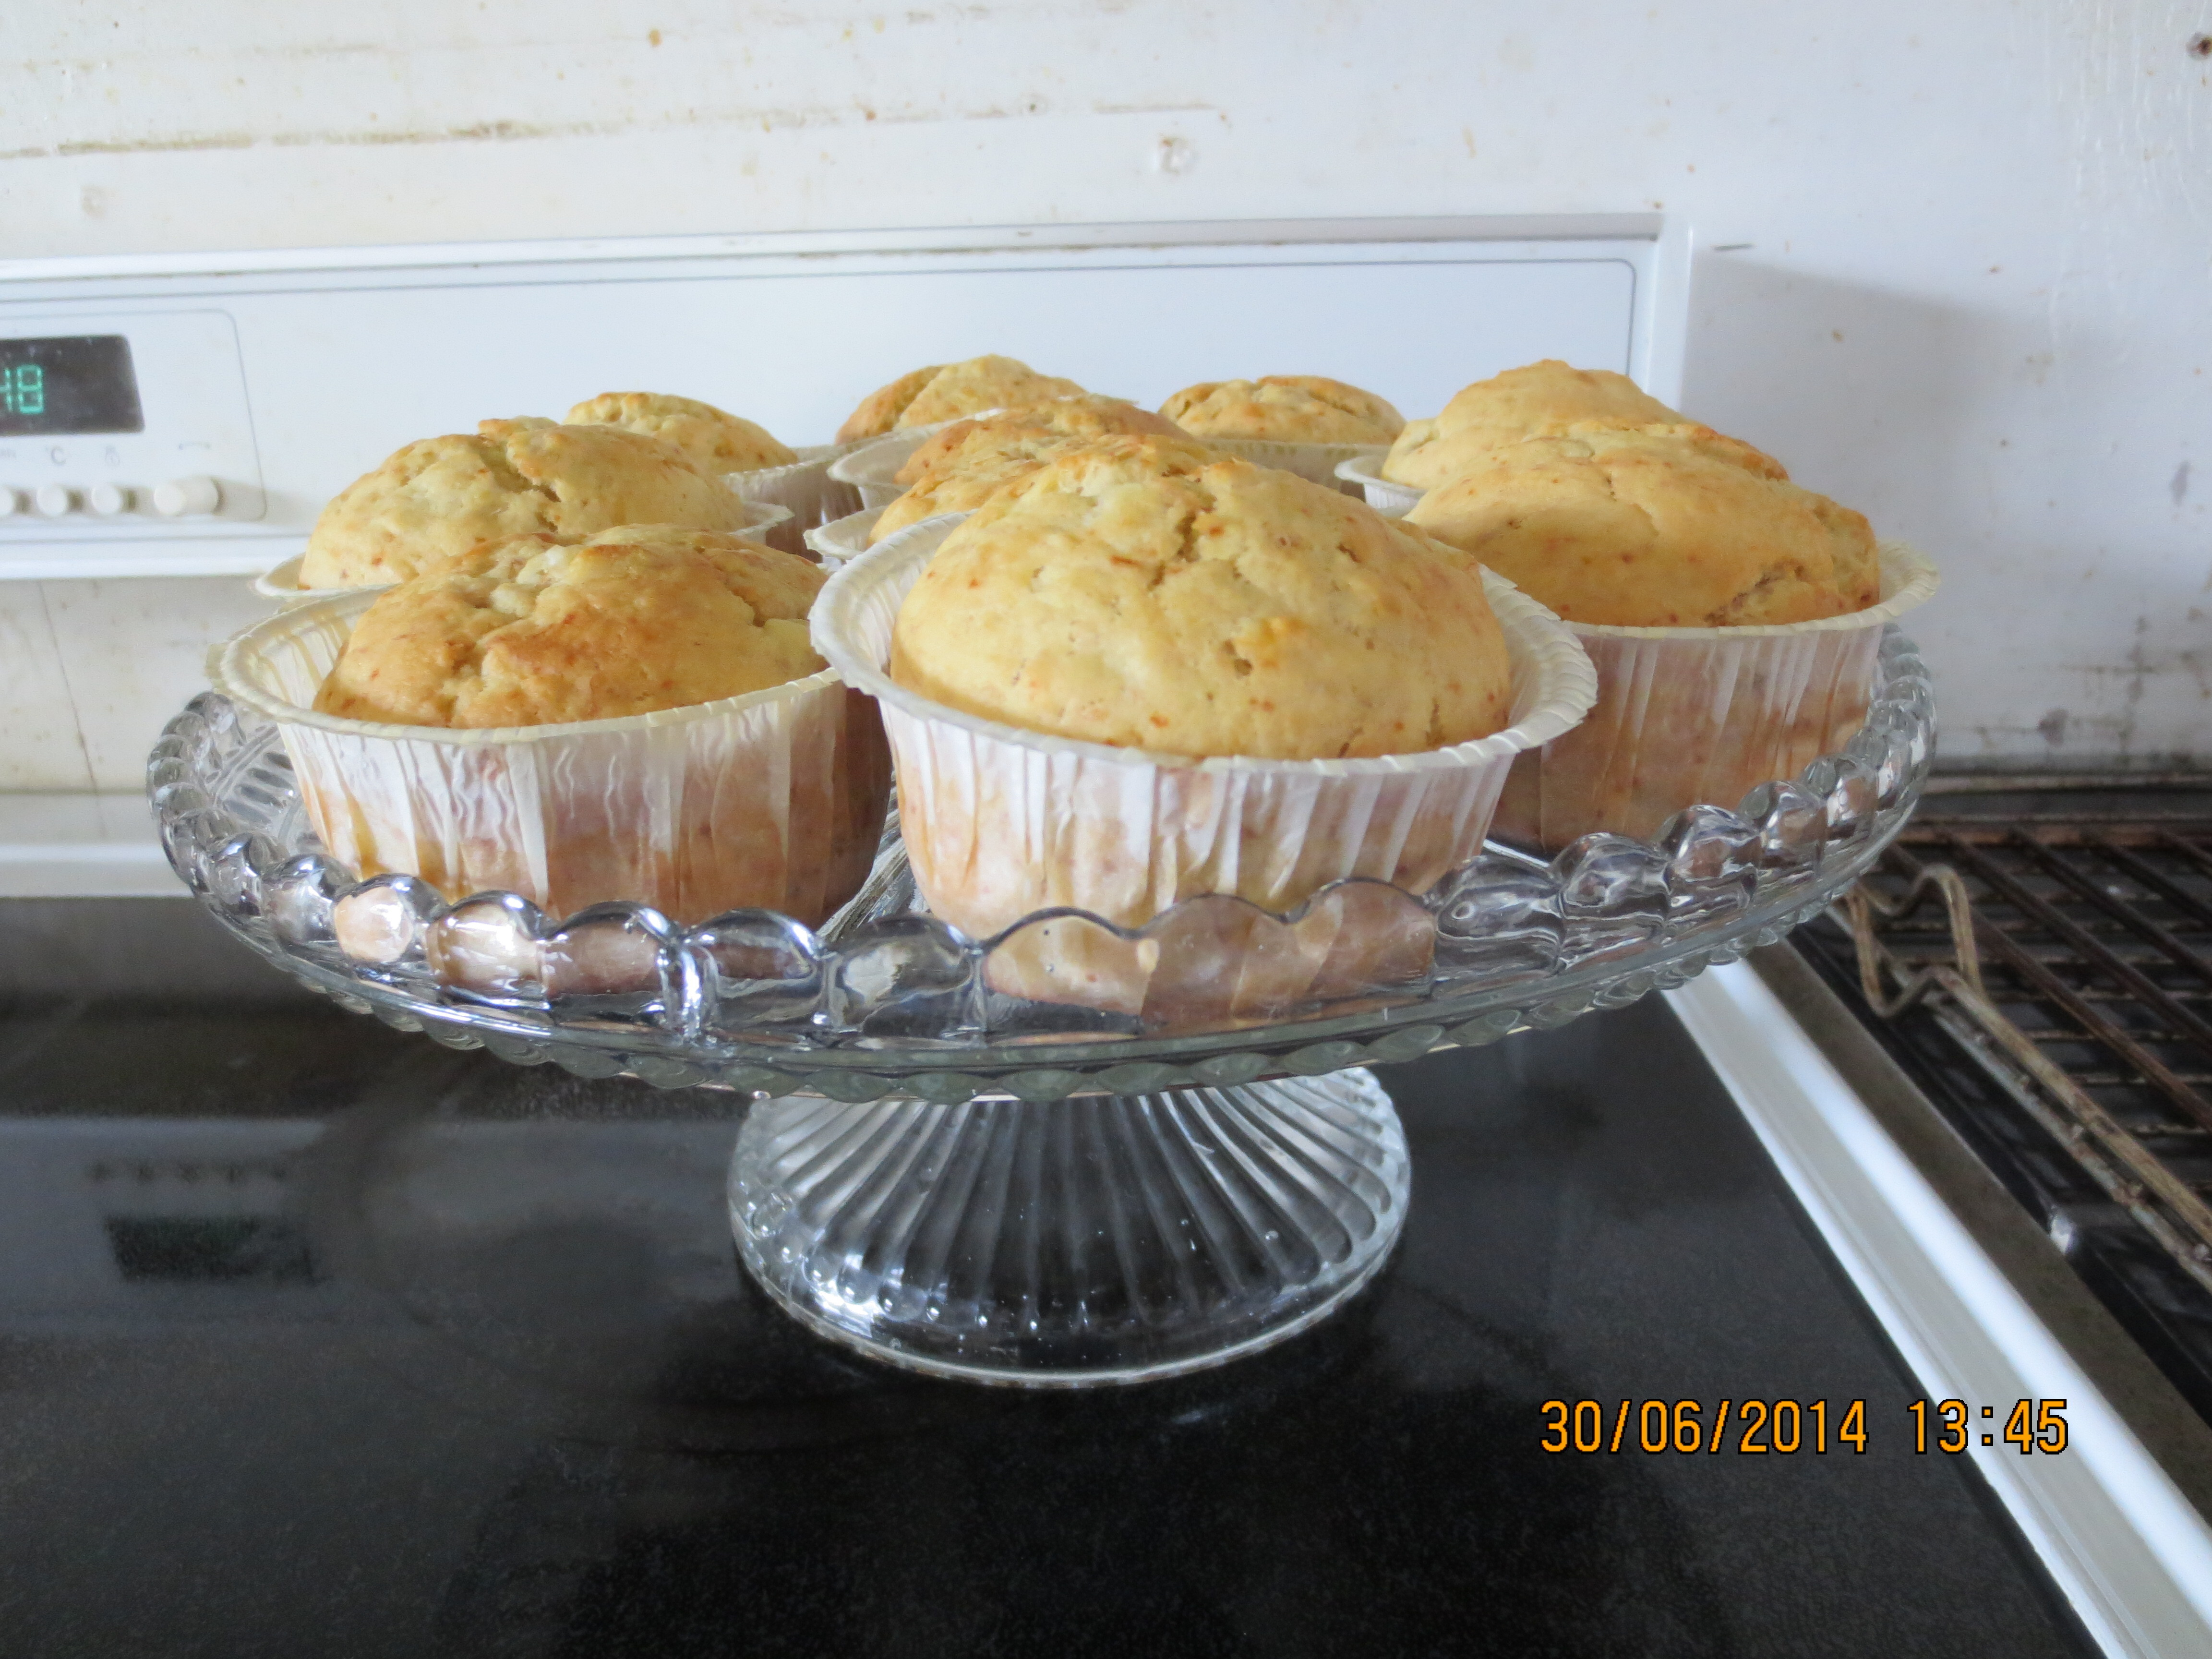 Mosters bananmuffins